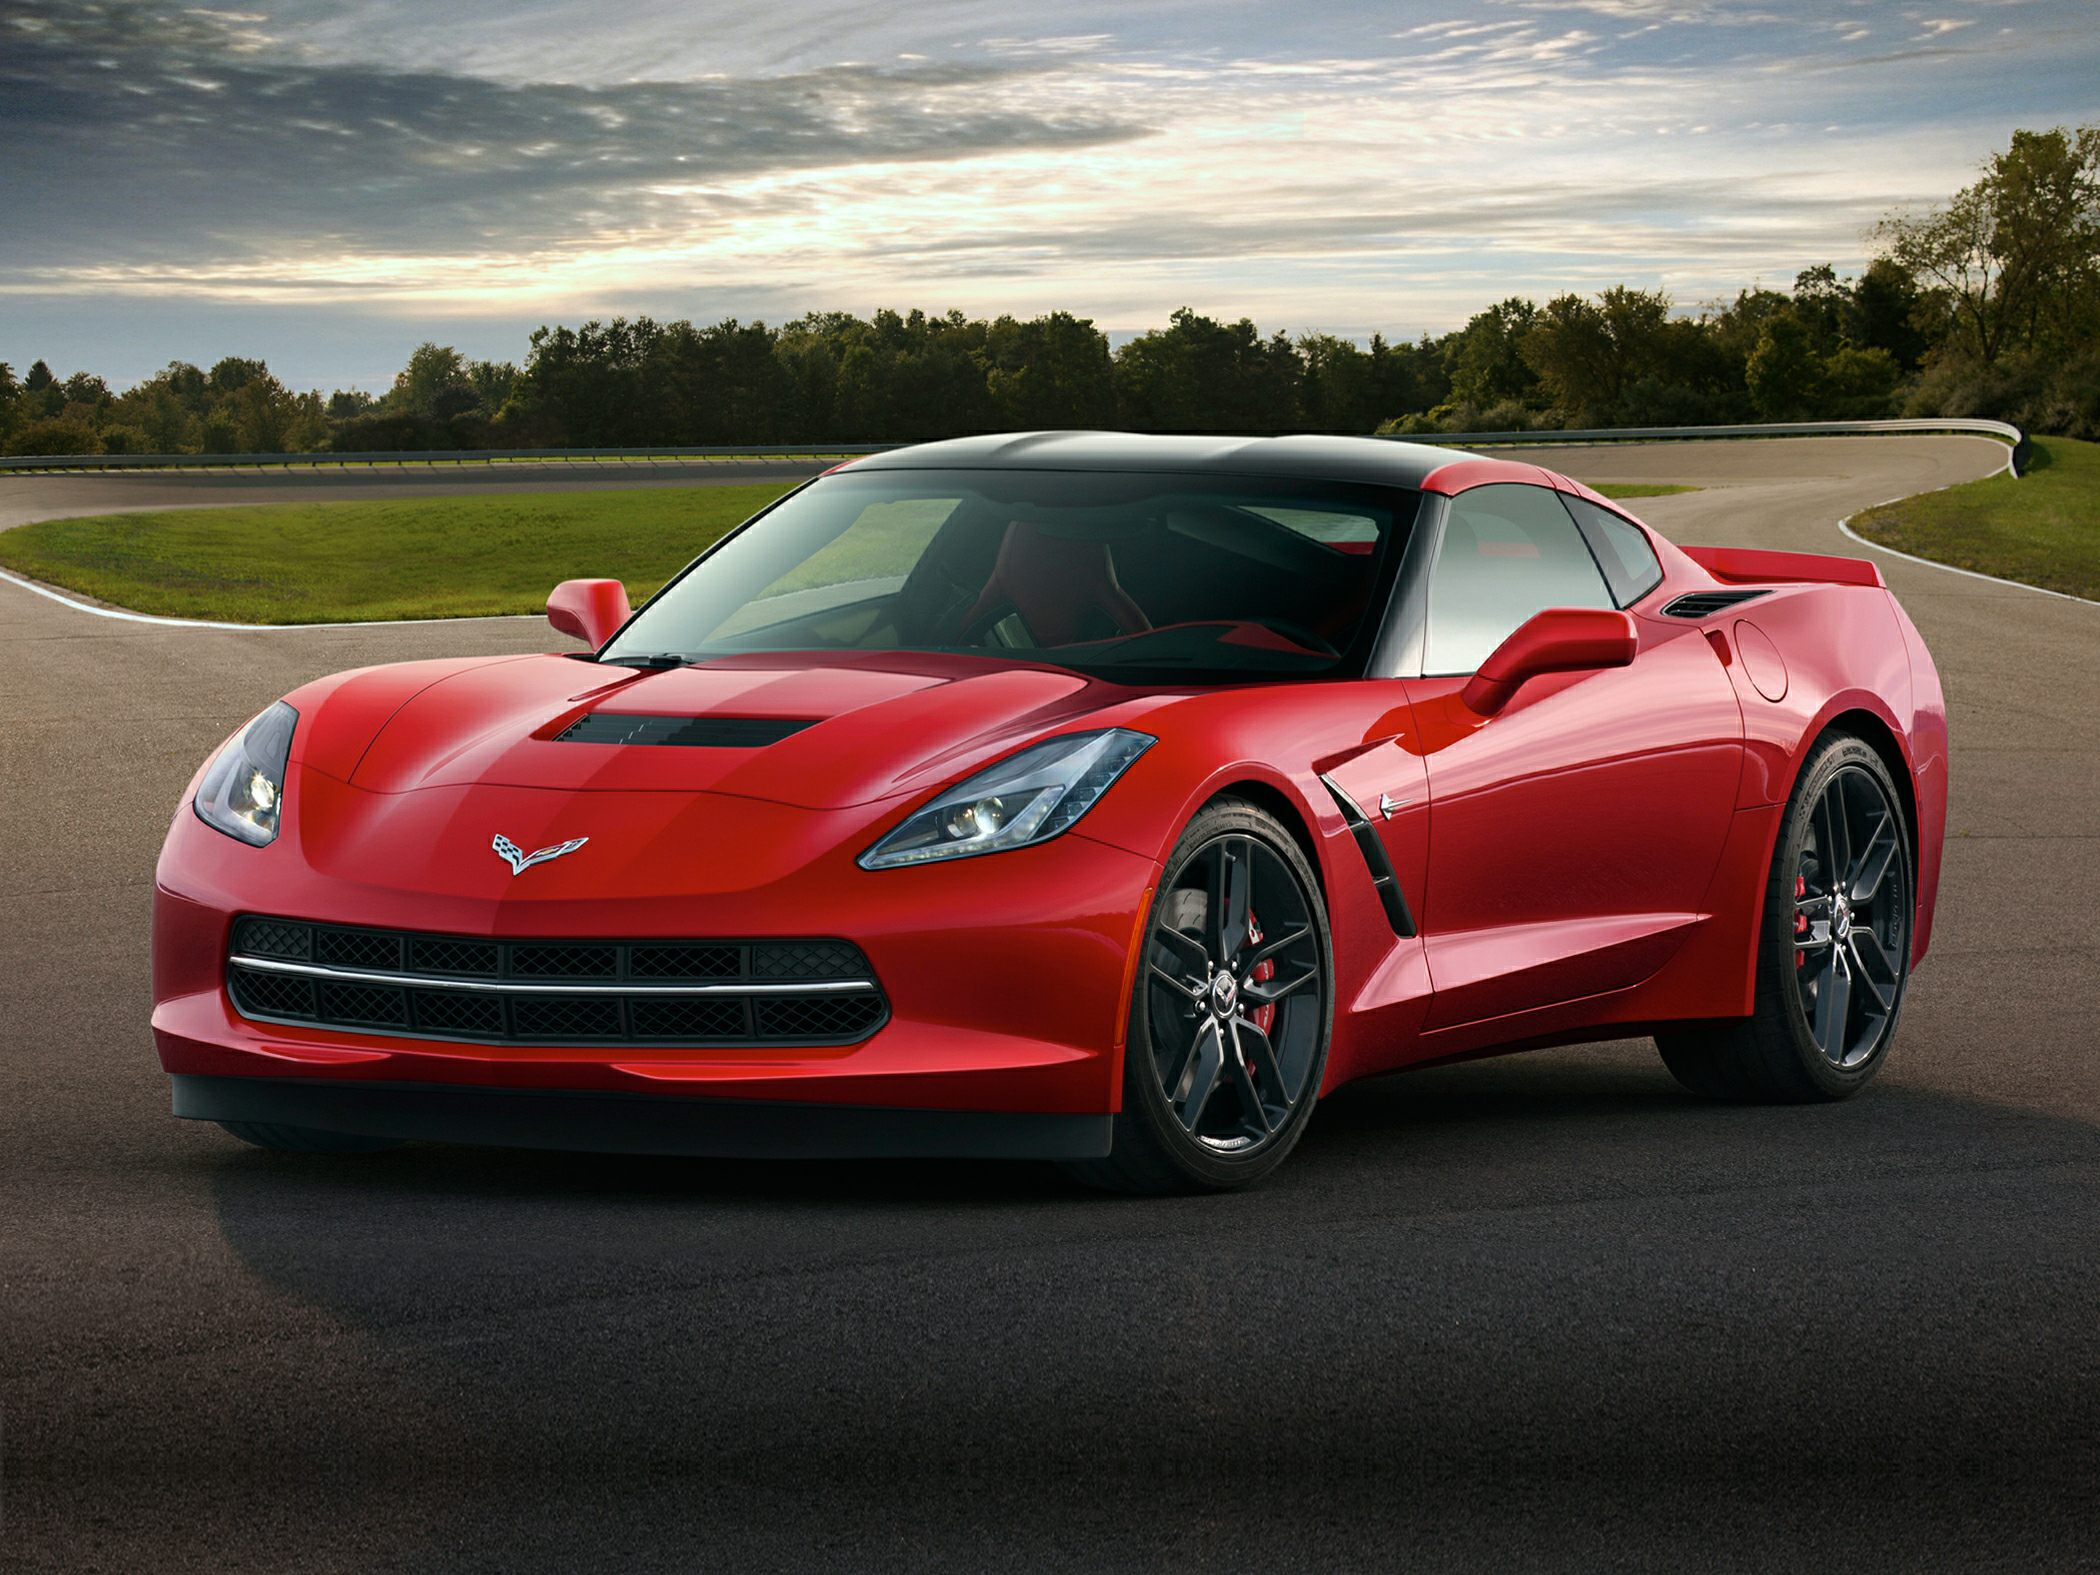 2018 Chevrolet Corvette Stingray price